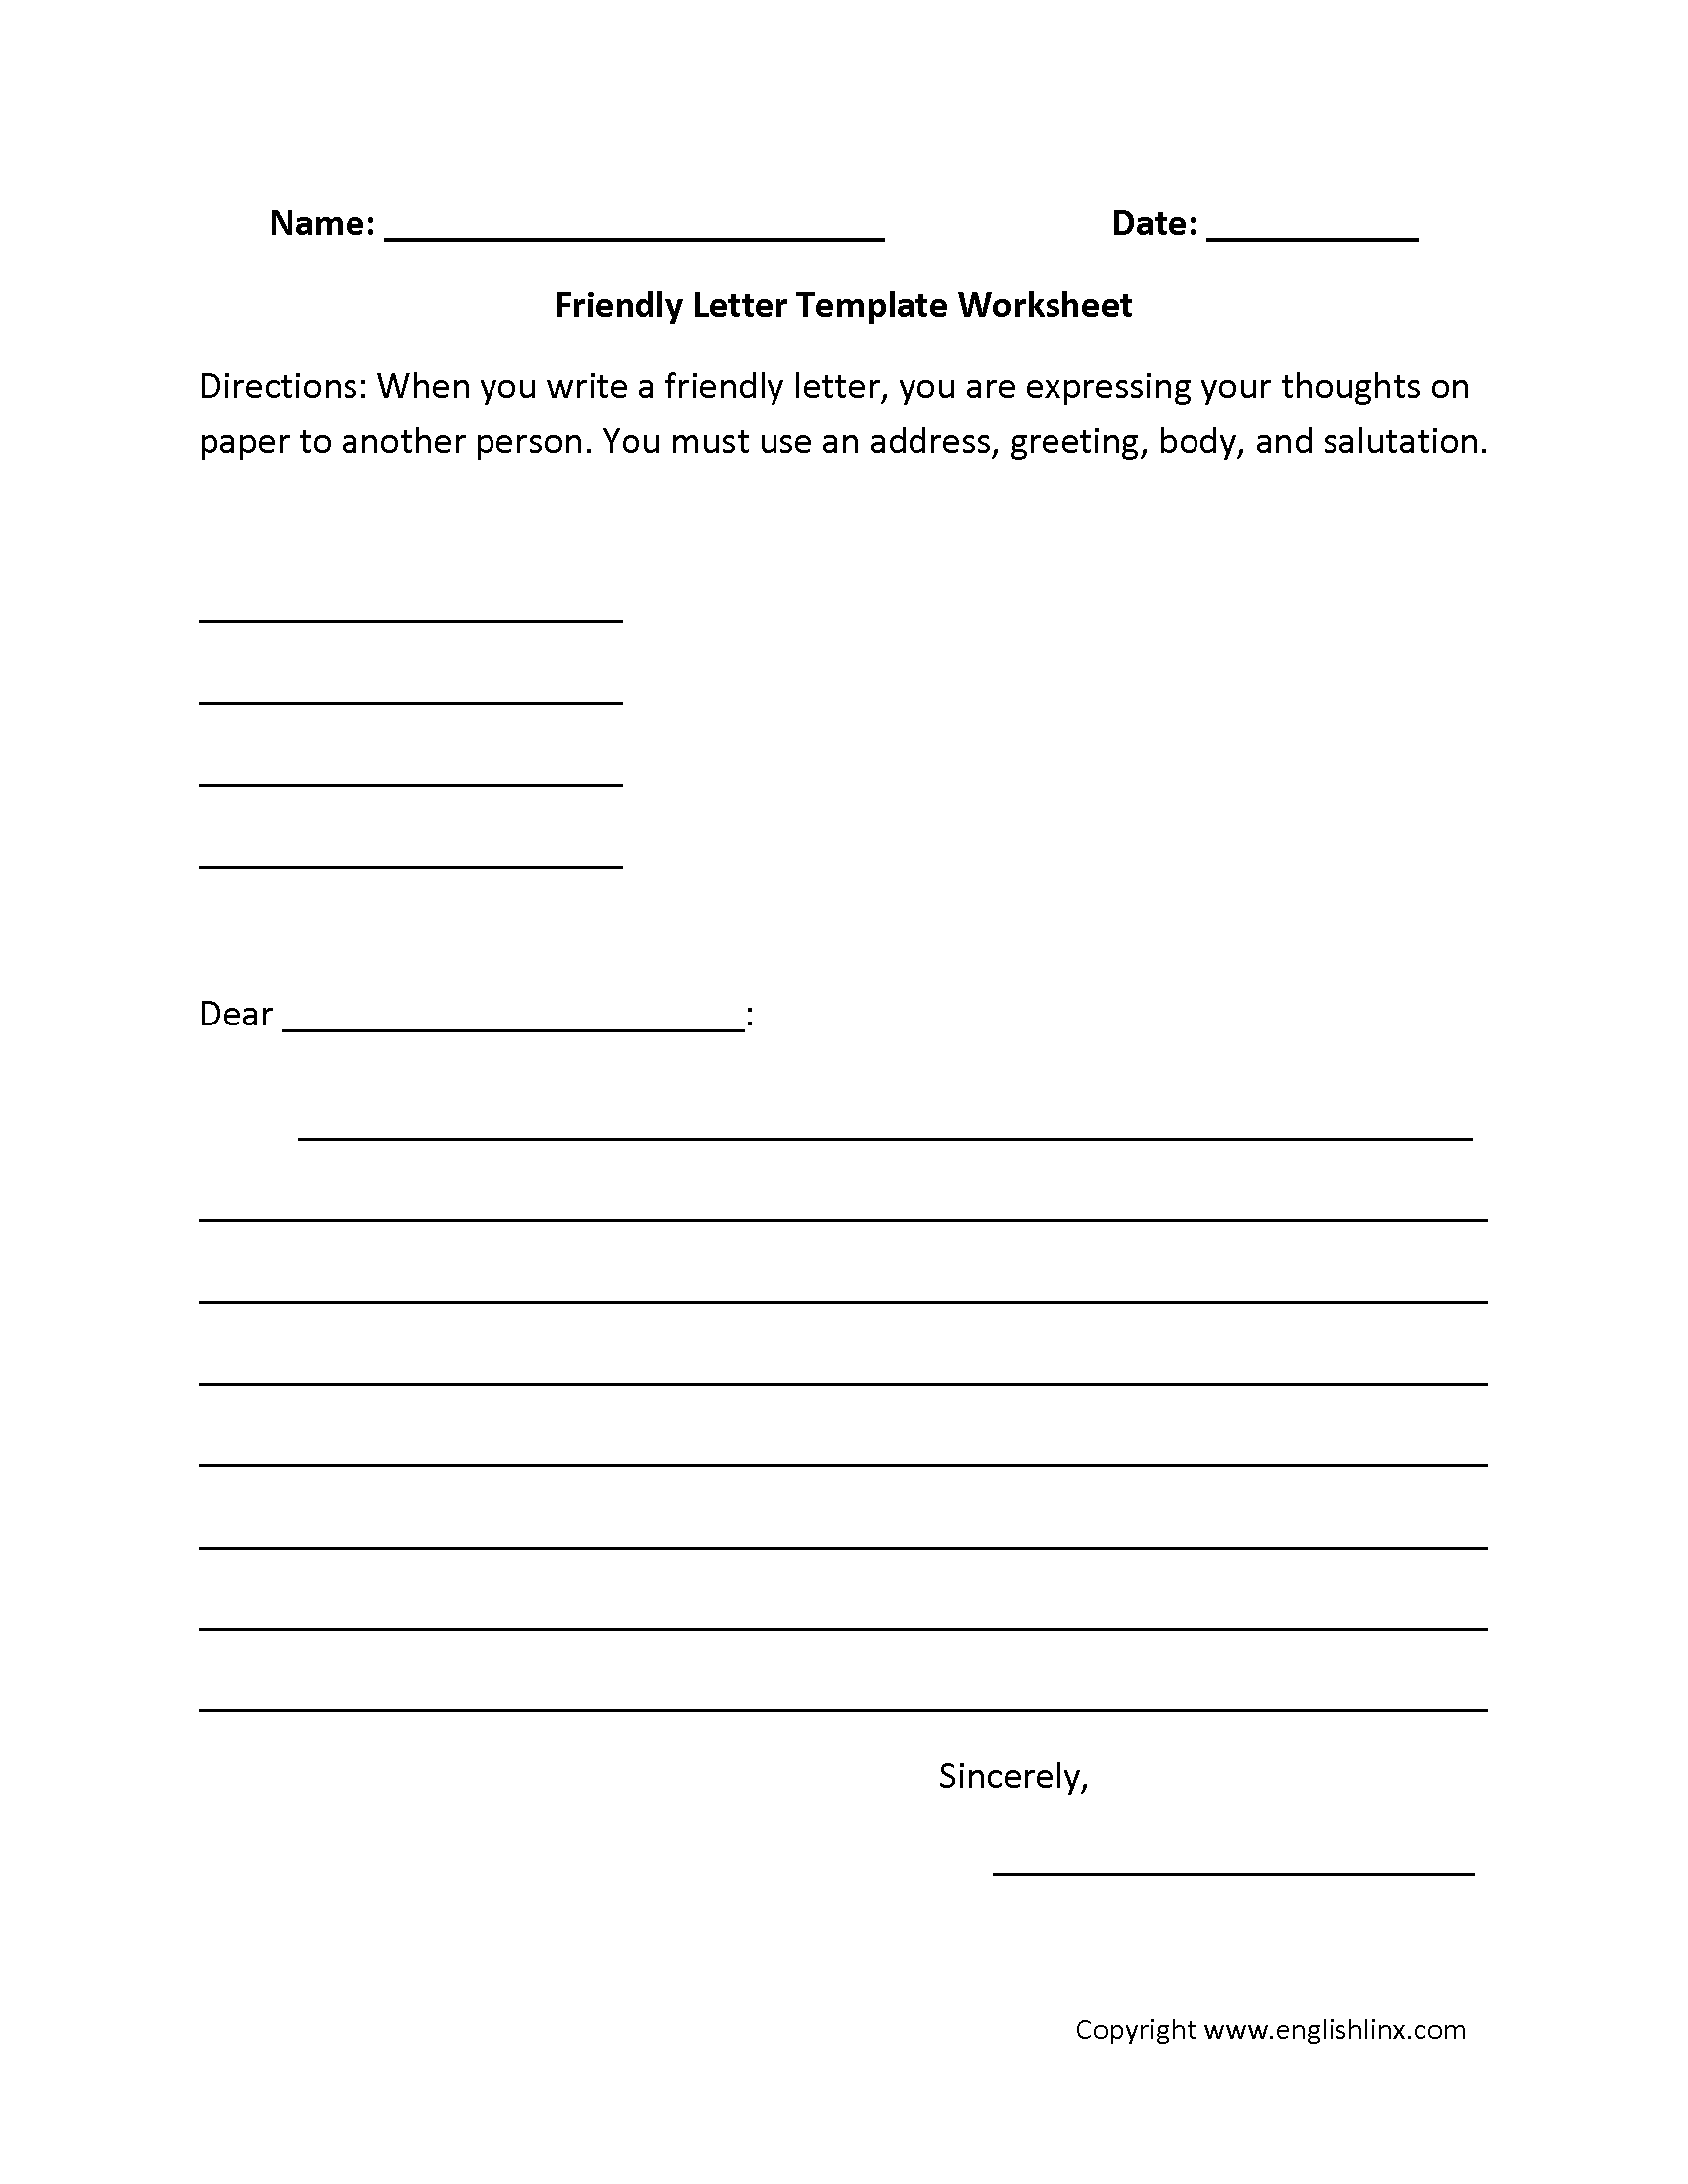 letter writing worksheets | friendly letter writing worksheets